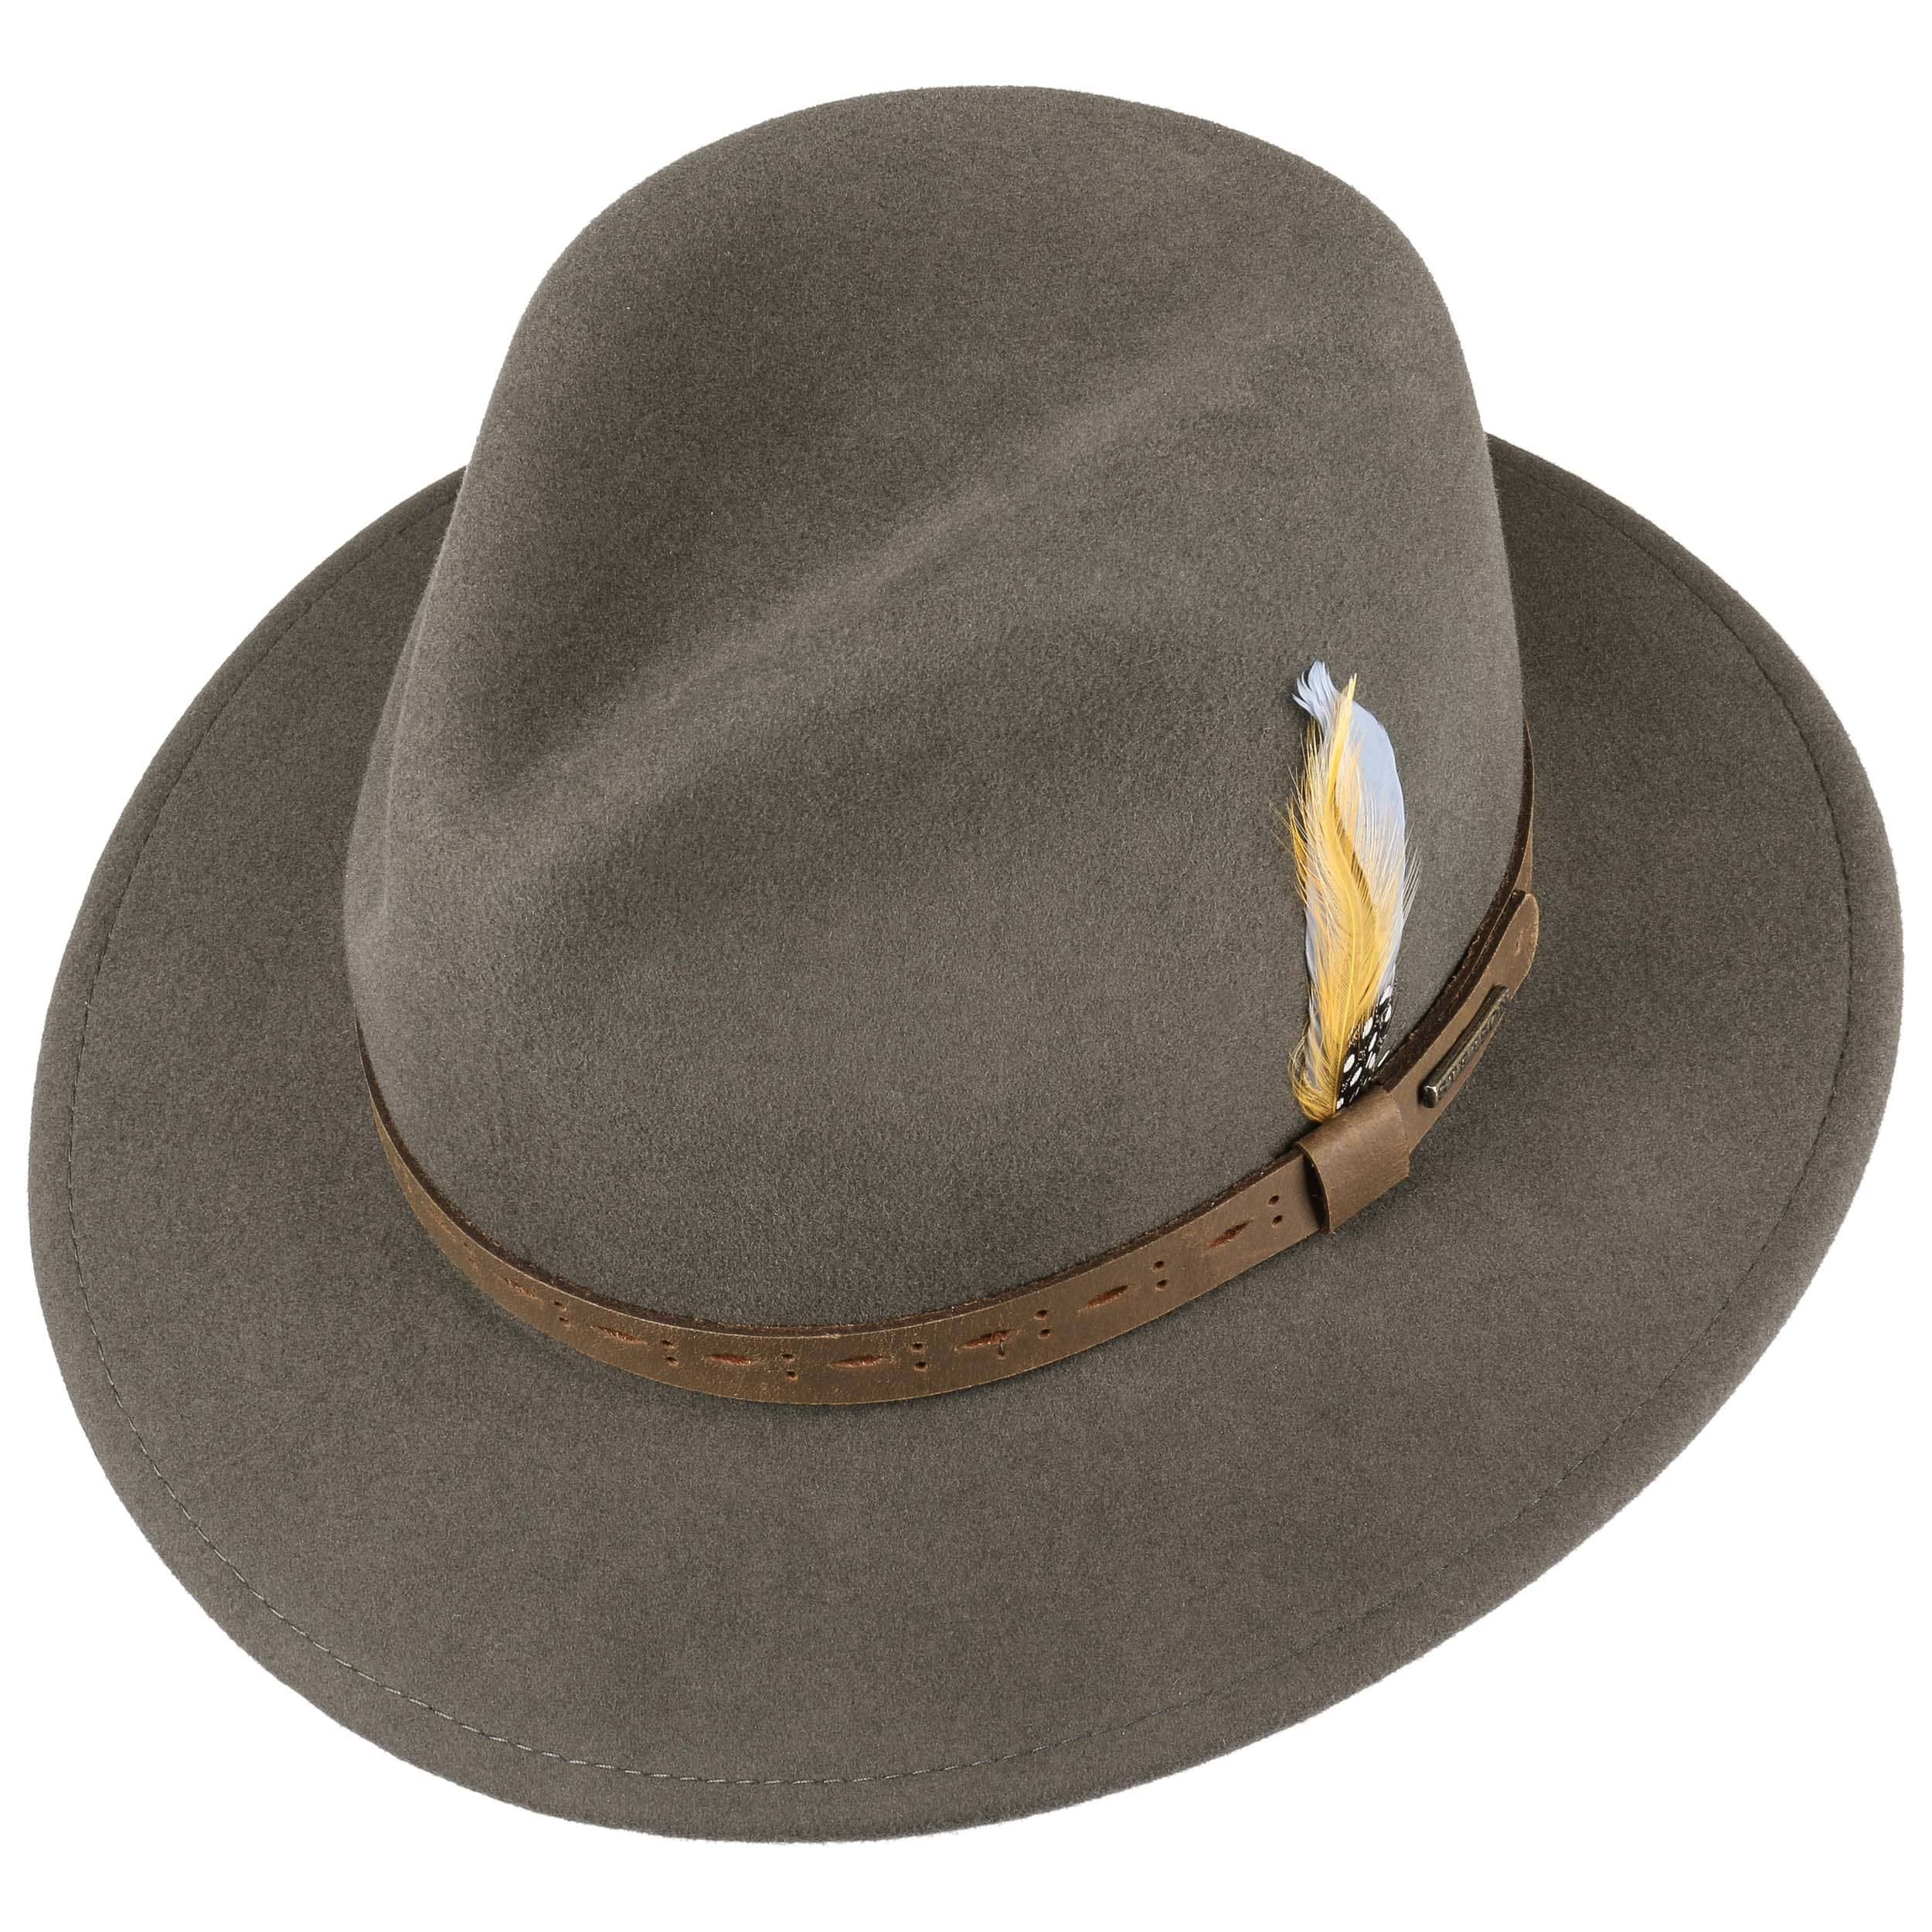 Cutaro VitaFelt Traveller Wool Hat dark grey